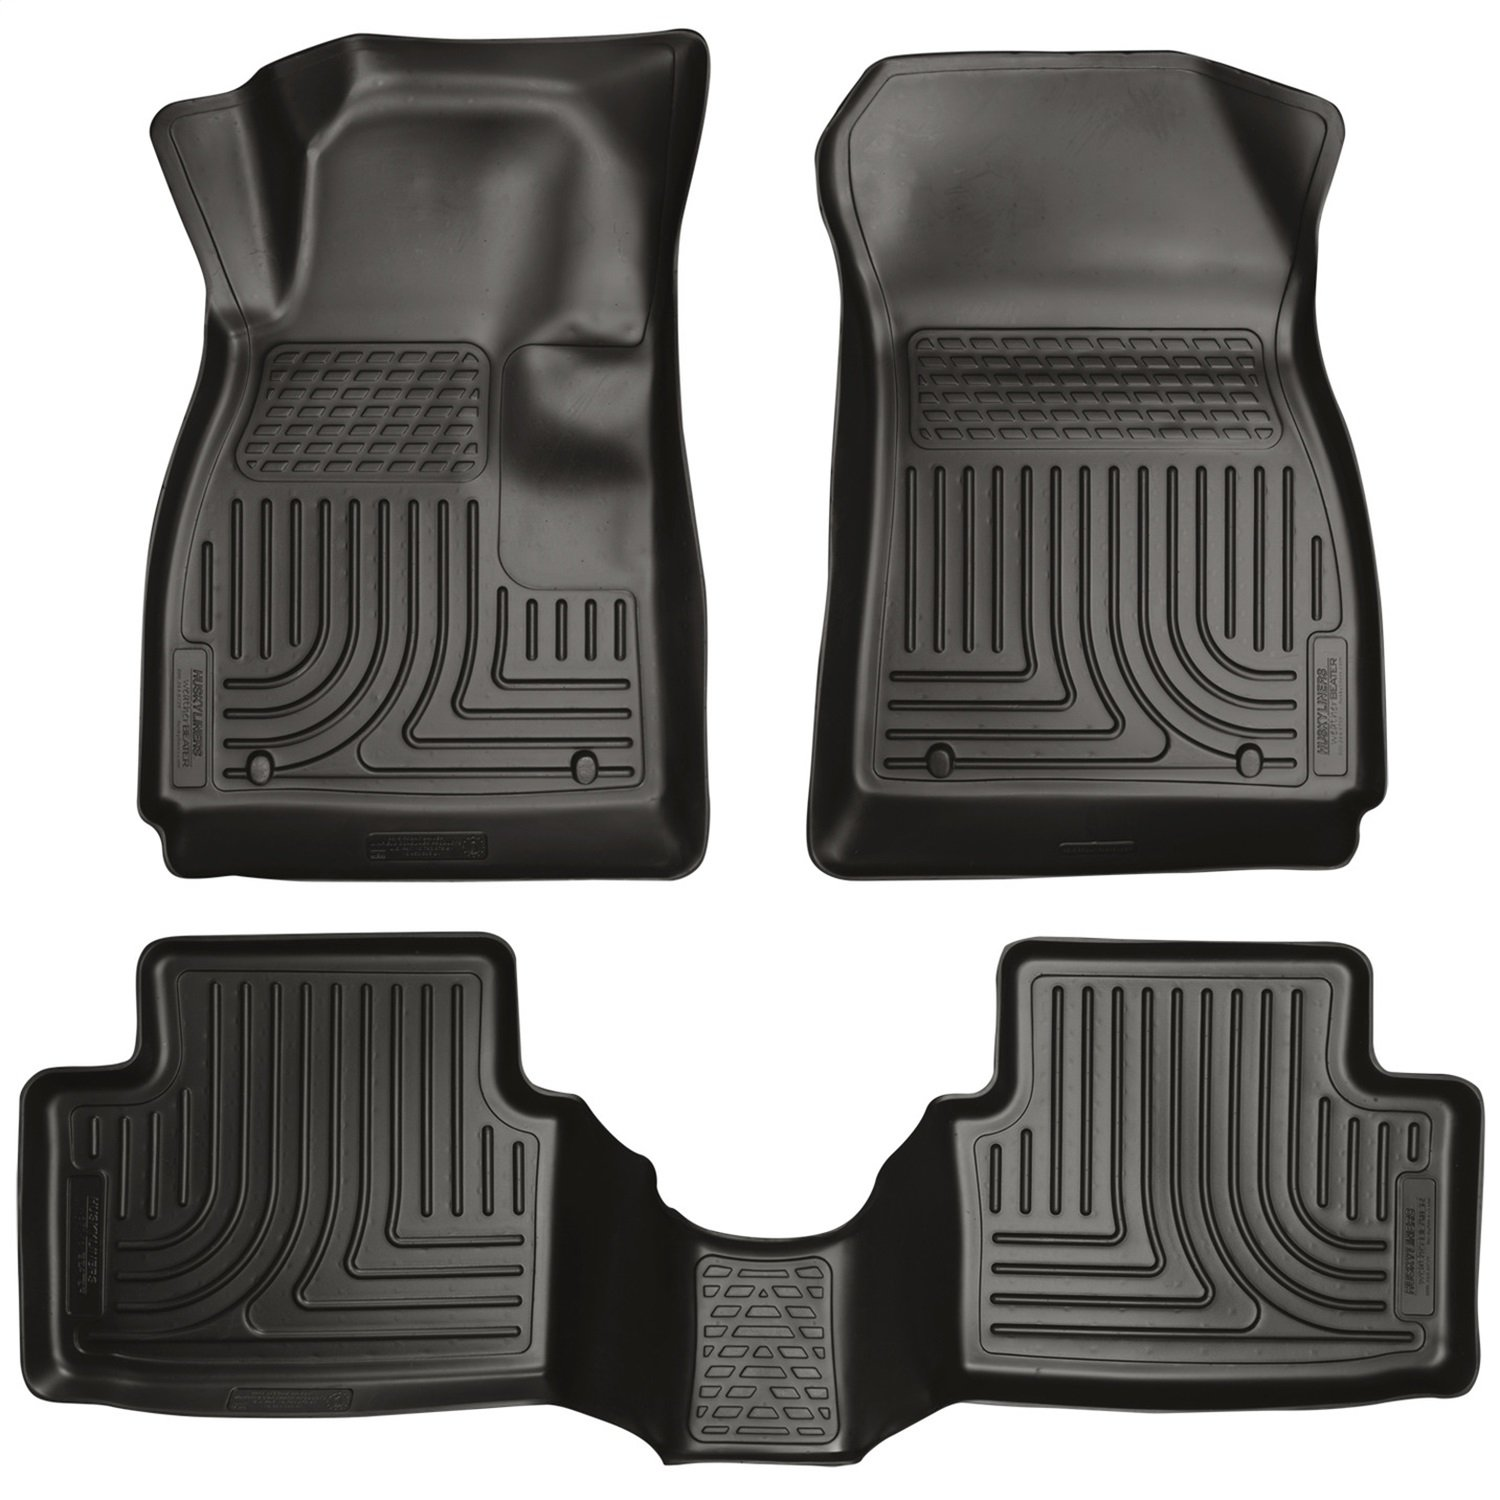 Husky Liners Front /& 2nd Seat Floor Liners Fits 14-17 Mazda 6 Grand Touring 99791